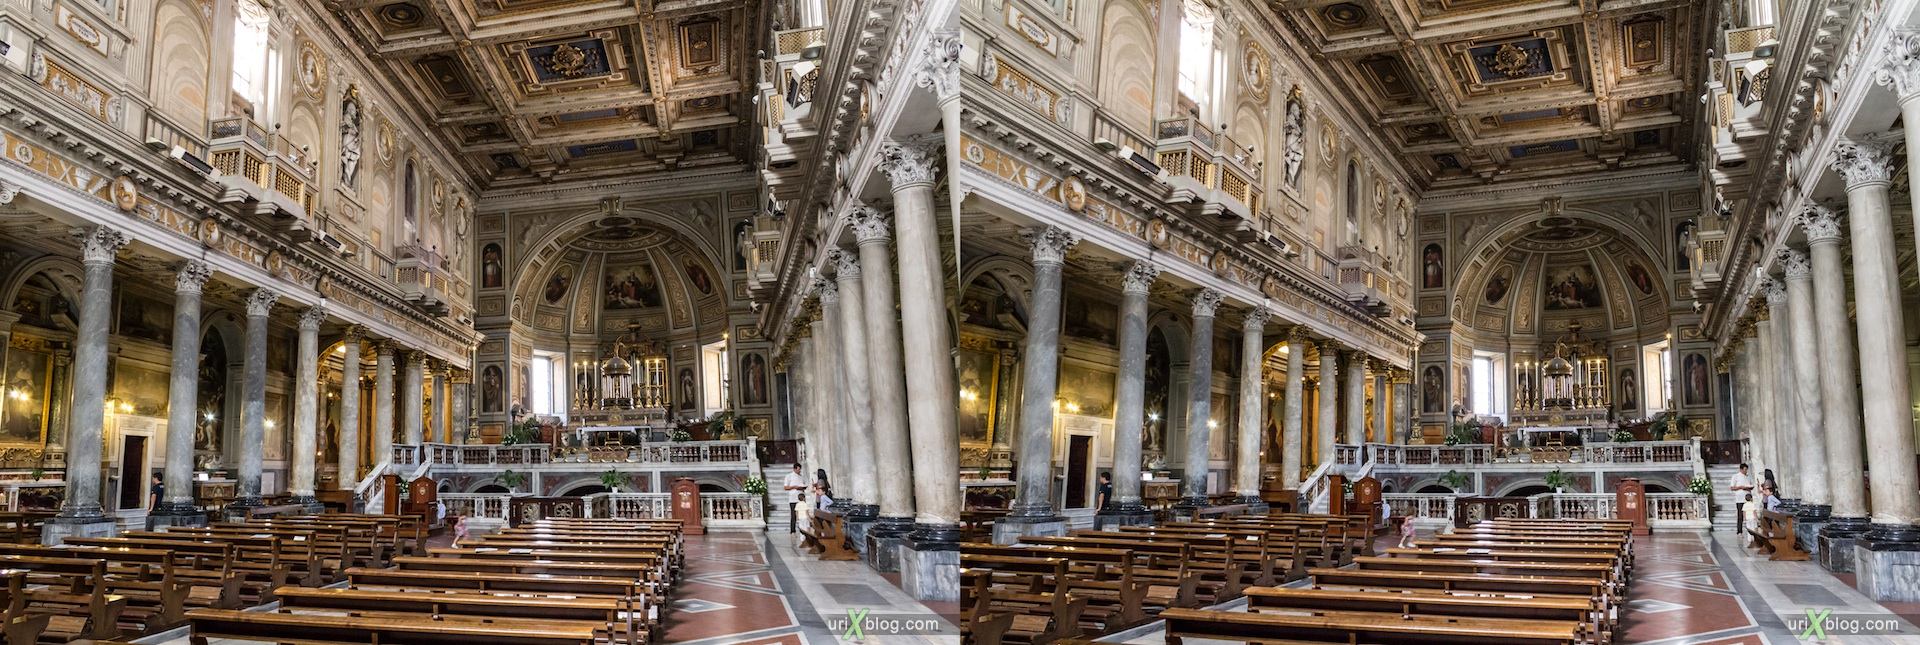 2012, church San Martino ai Monti, titolo Equizio, Rome, Italy, cathedral, monastery, Christianity, Catholicism, 3D, stereo pair, cross-eyed, crossview, cross view stereo pair